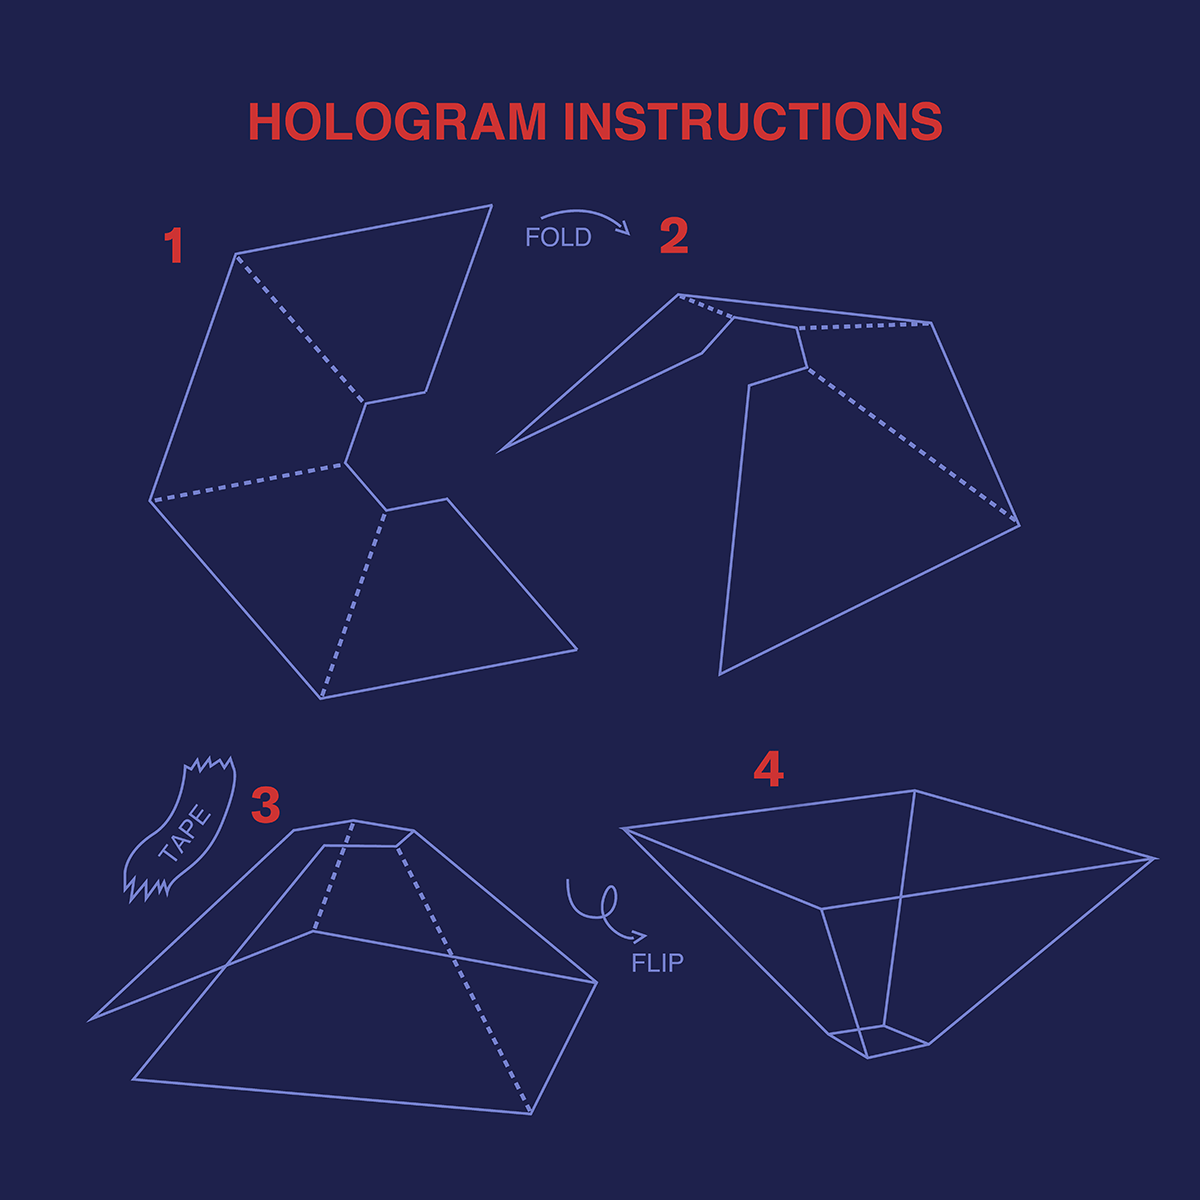 Hologram instructions